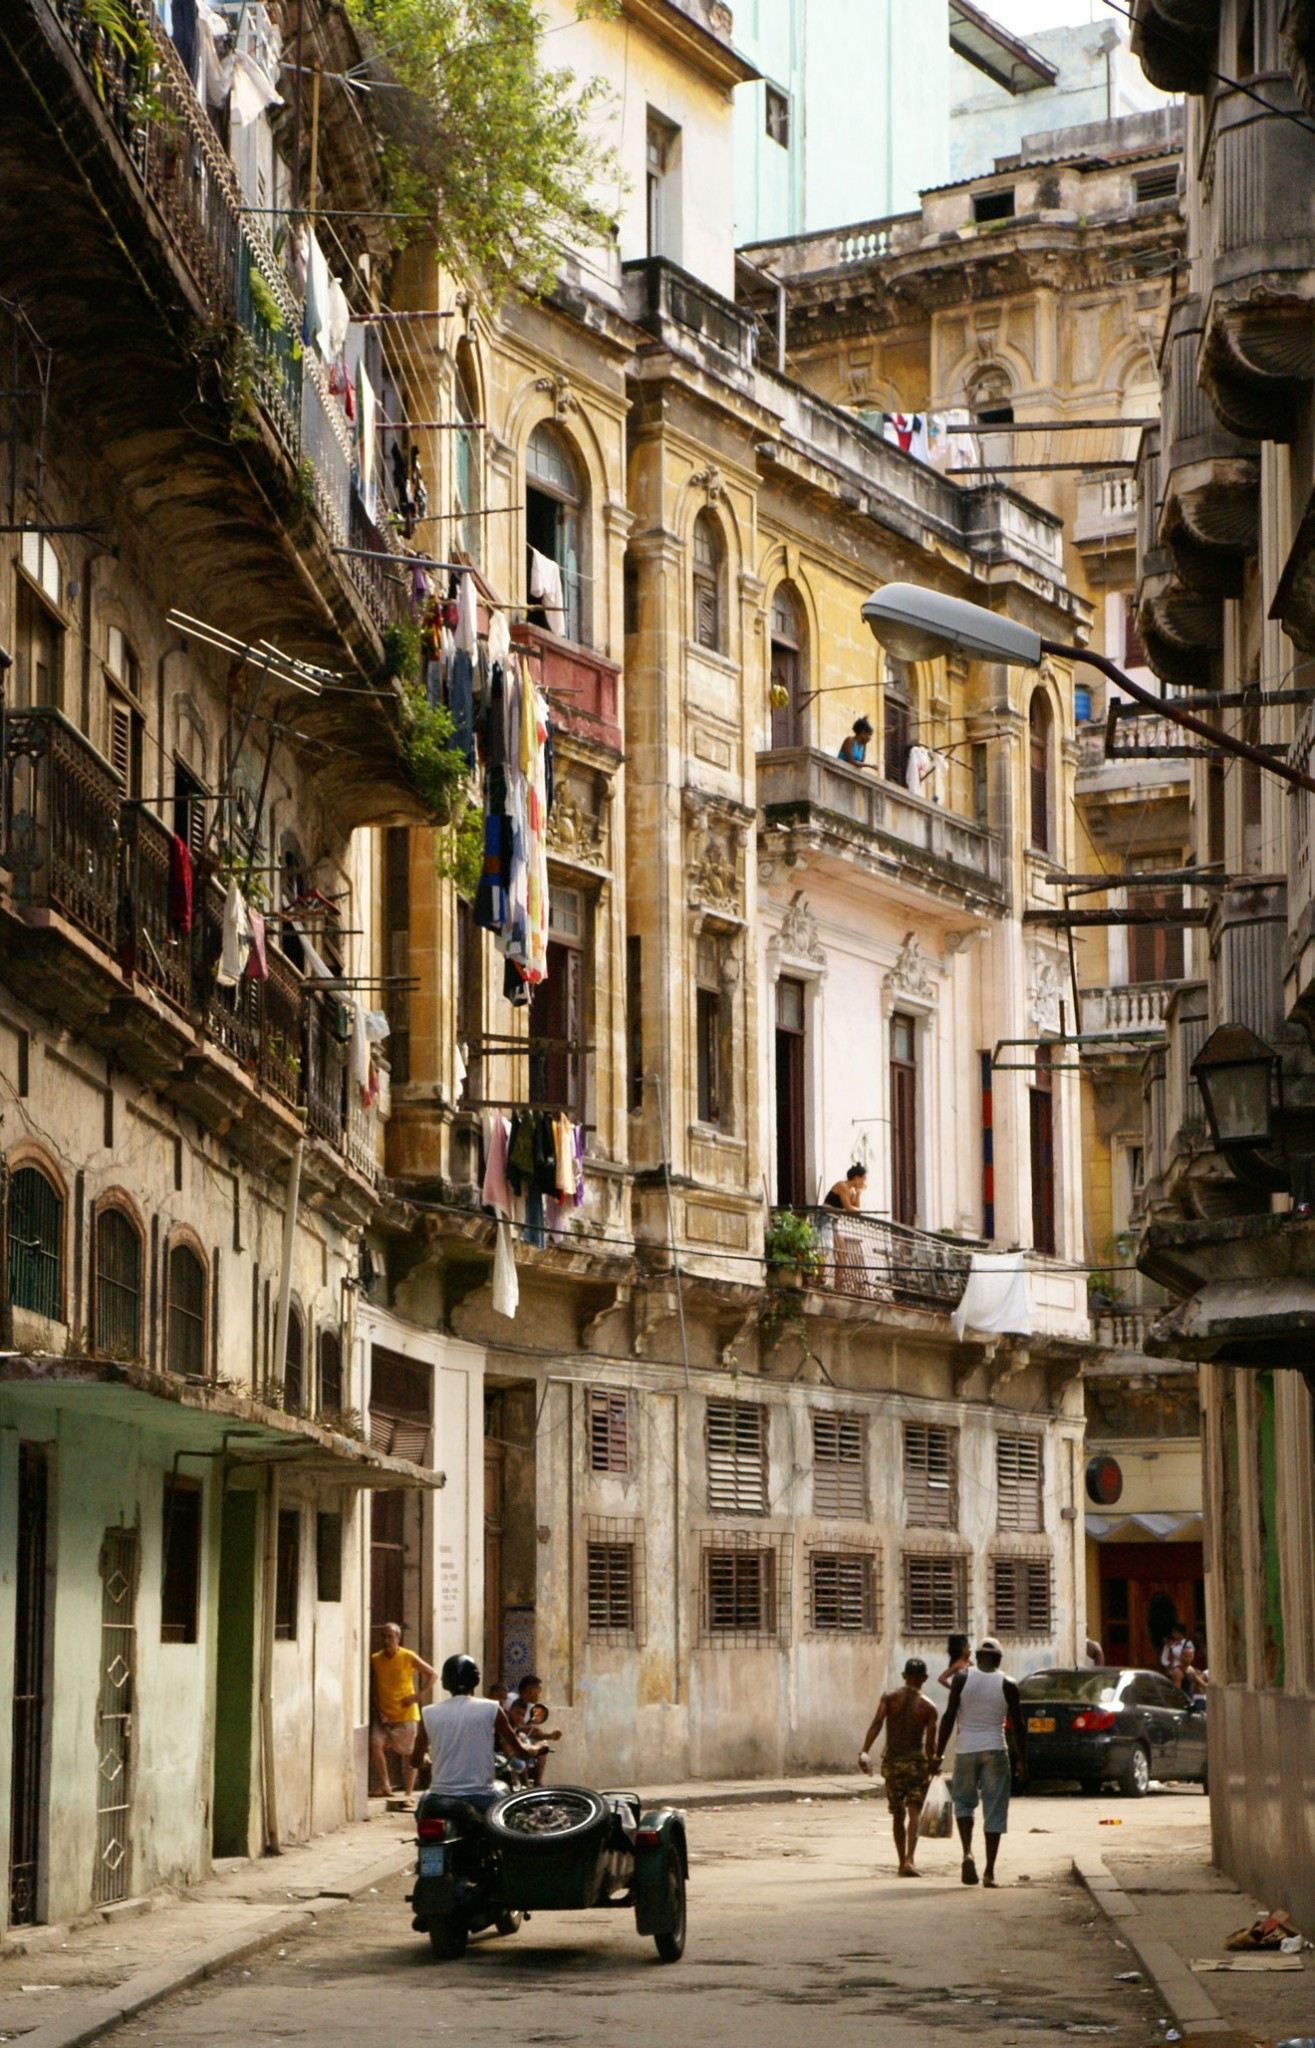 Vedado neighbourhood, Havana. Photo by Ovidiu Balaj